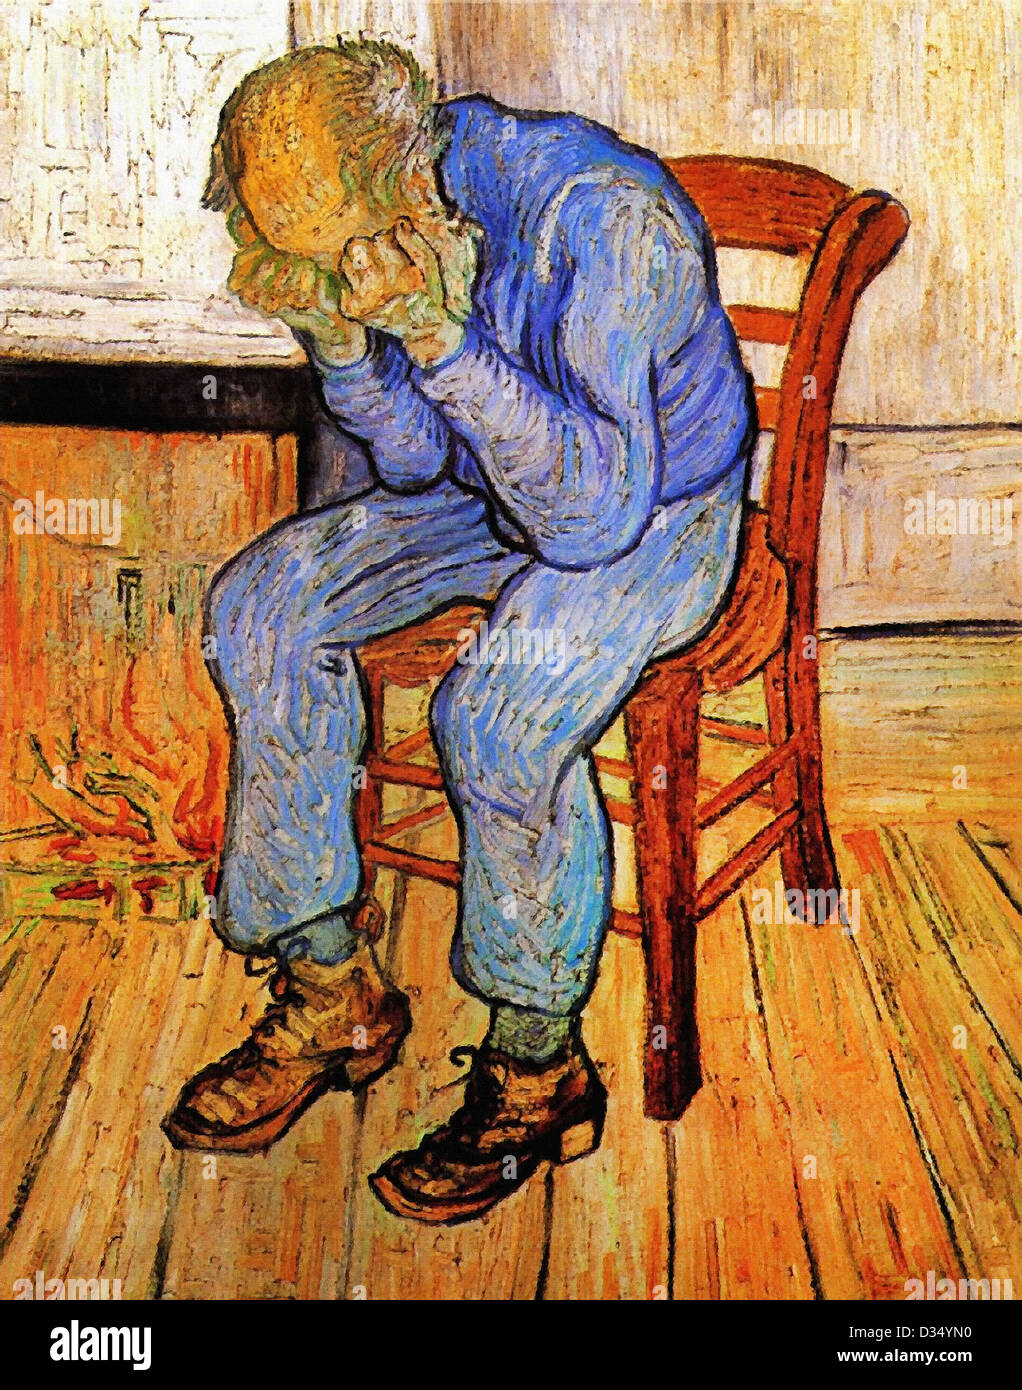 Vincent van Gogh, Old Man in Sorrow (On the Threshold of Eternity). 1890. Post-Impressionism. Oil on canvas. - Stock Image